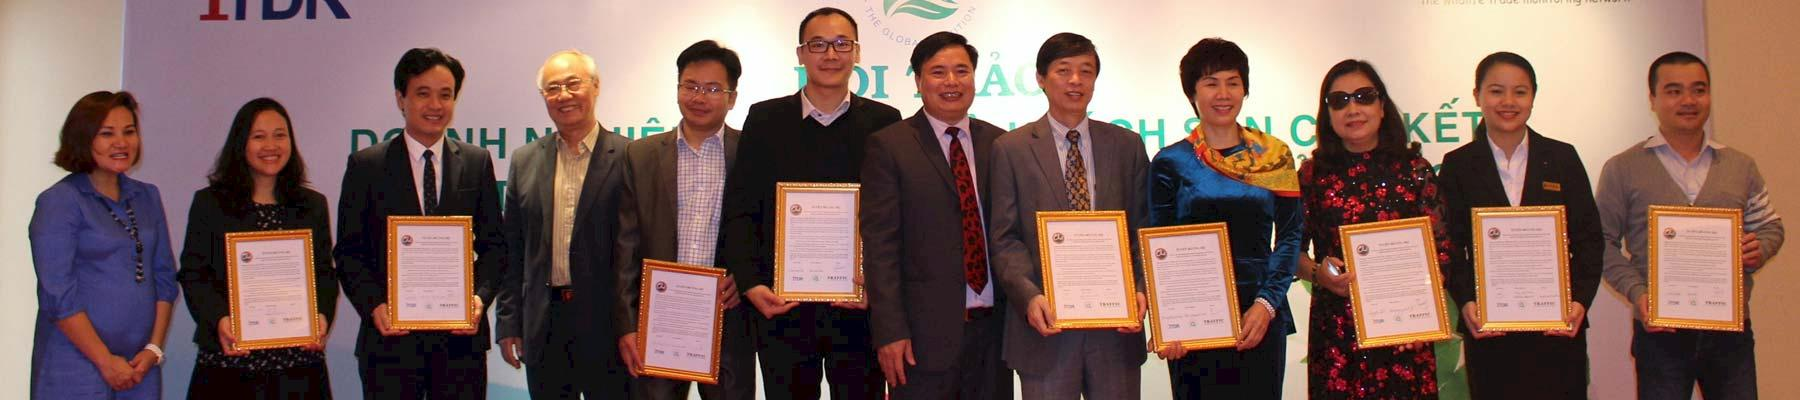 Hanoi: nine businesses today signed pledges to adopt wildlife protection into their CSR policies © TRAFFIC